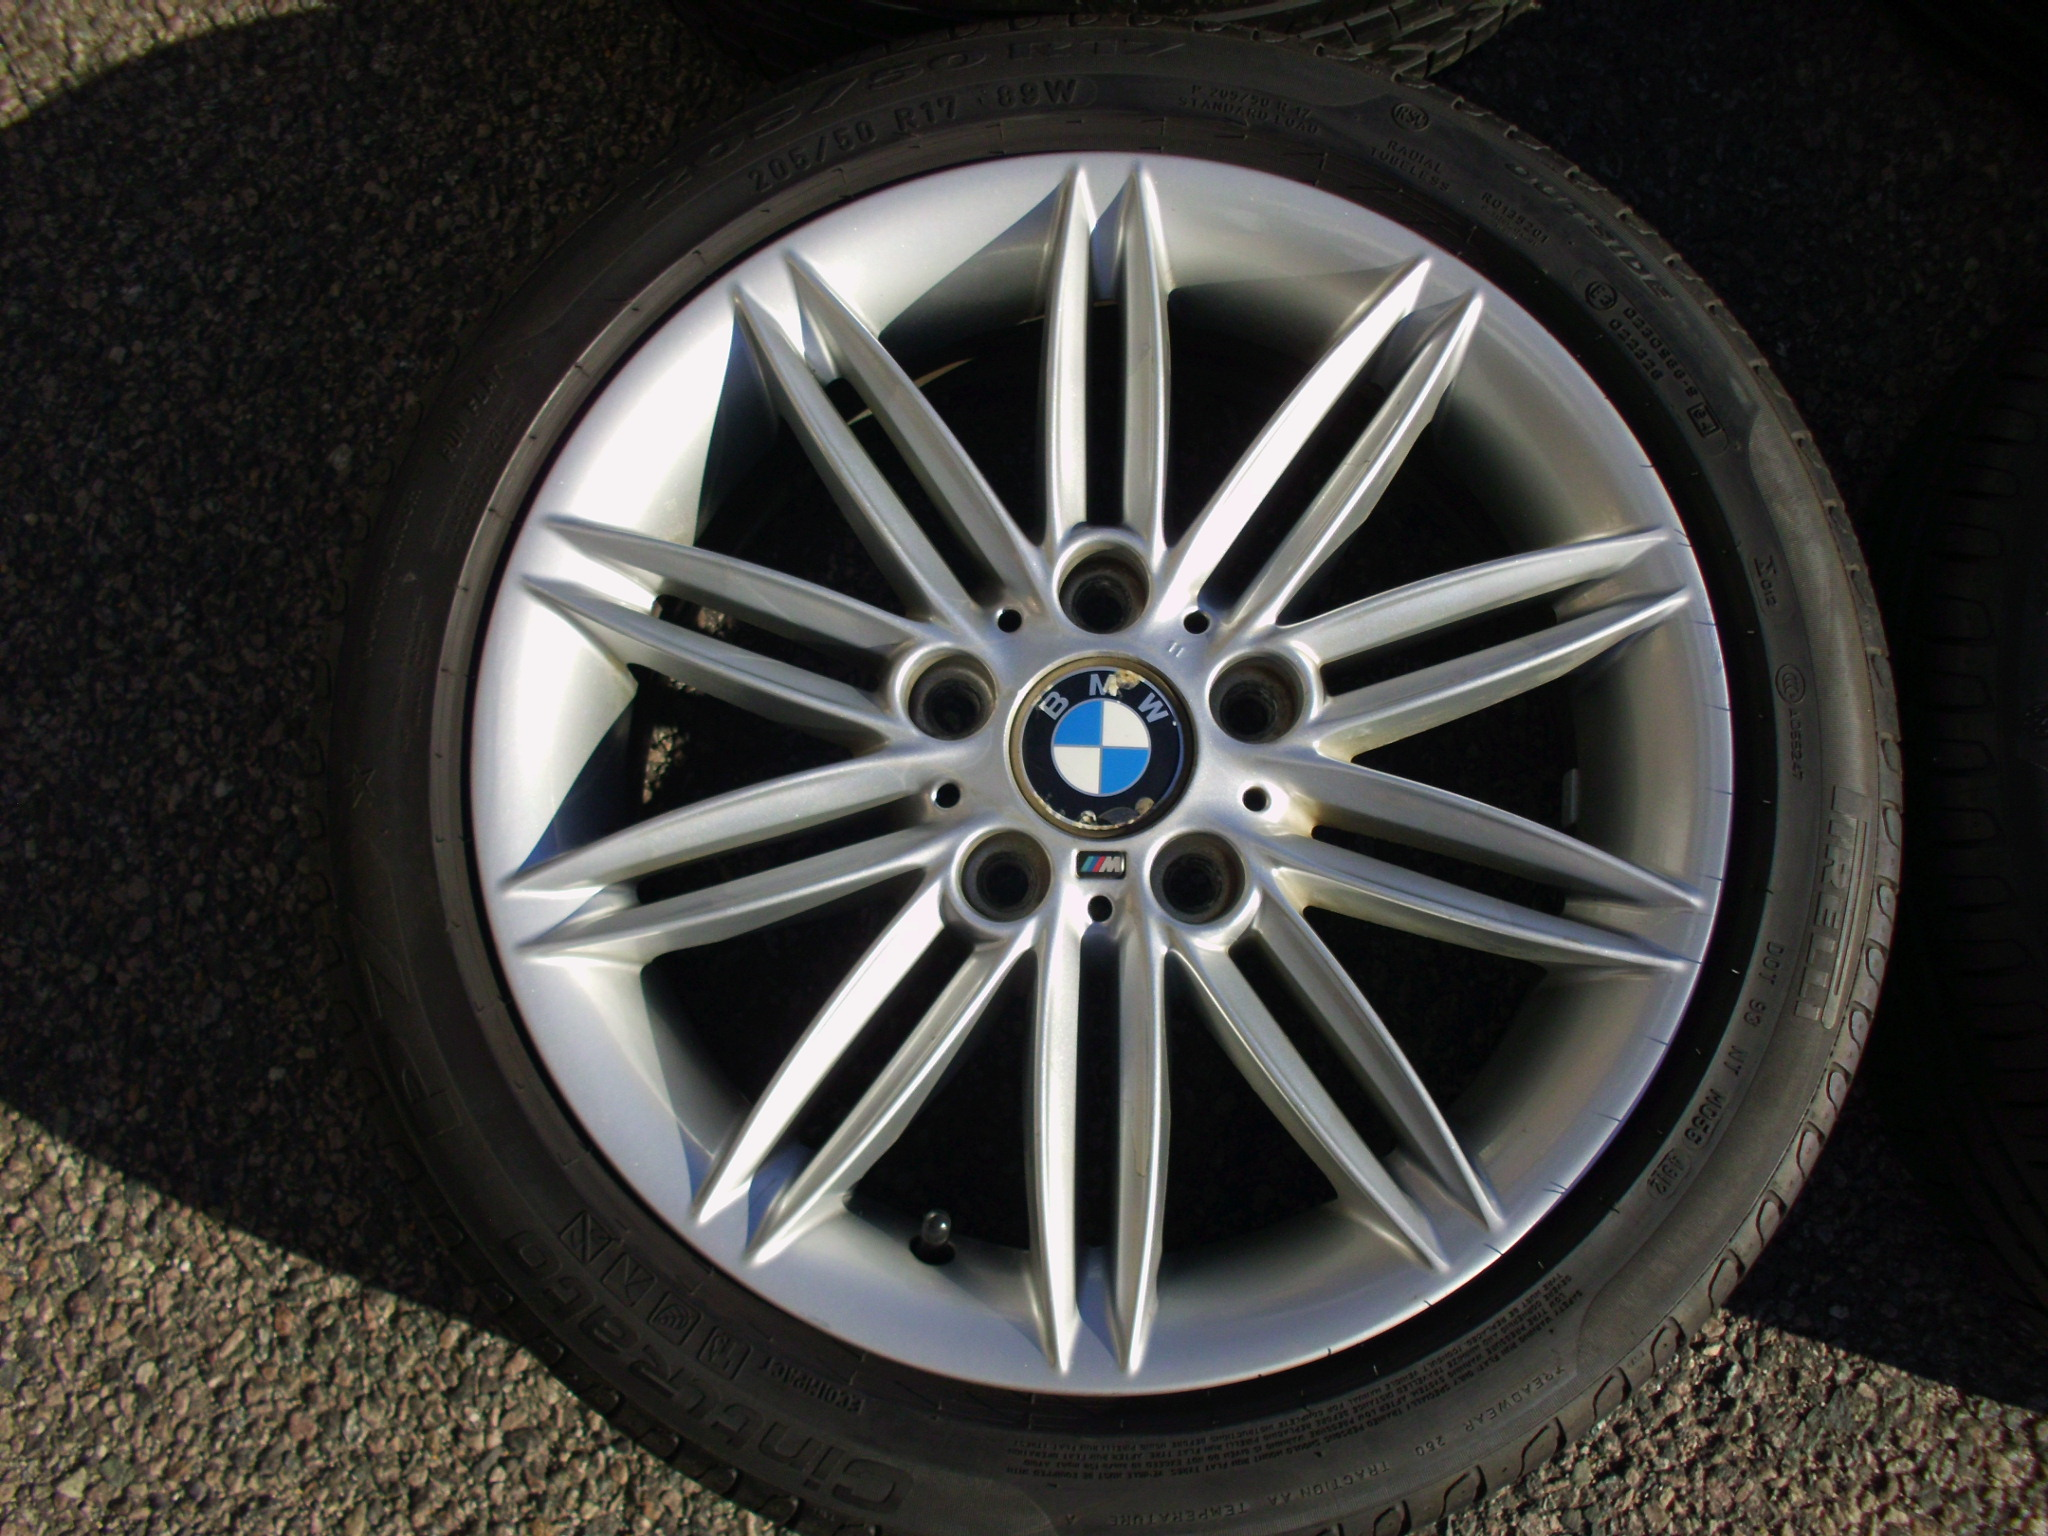 "USED 17"" GENUINE STYLE 207 1 SERIES M SPORT ALLOY WHEELS, WIDE REAR,CLEAN INC GOOD RUNFLAT TYRES"